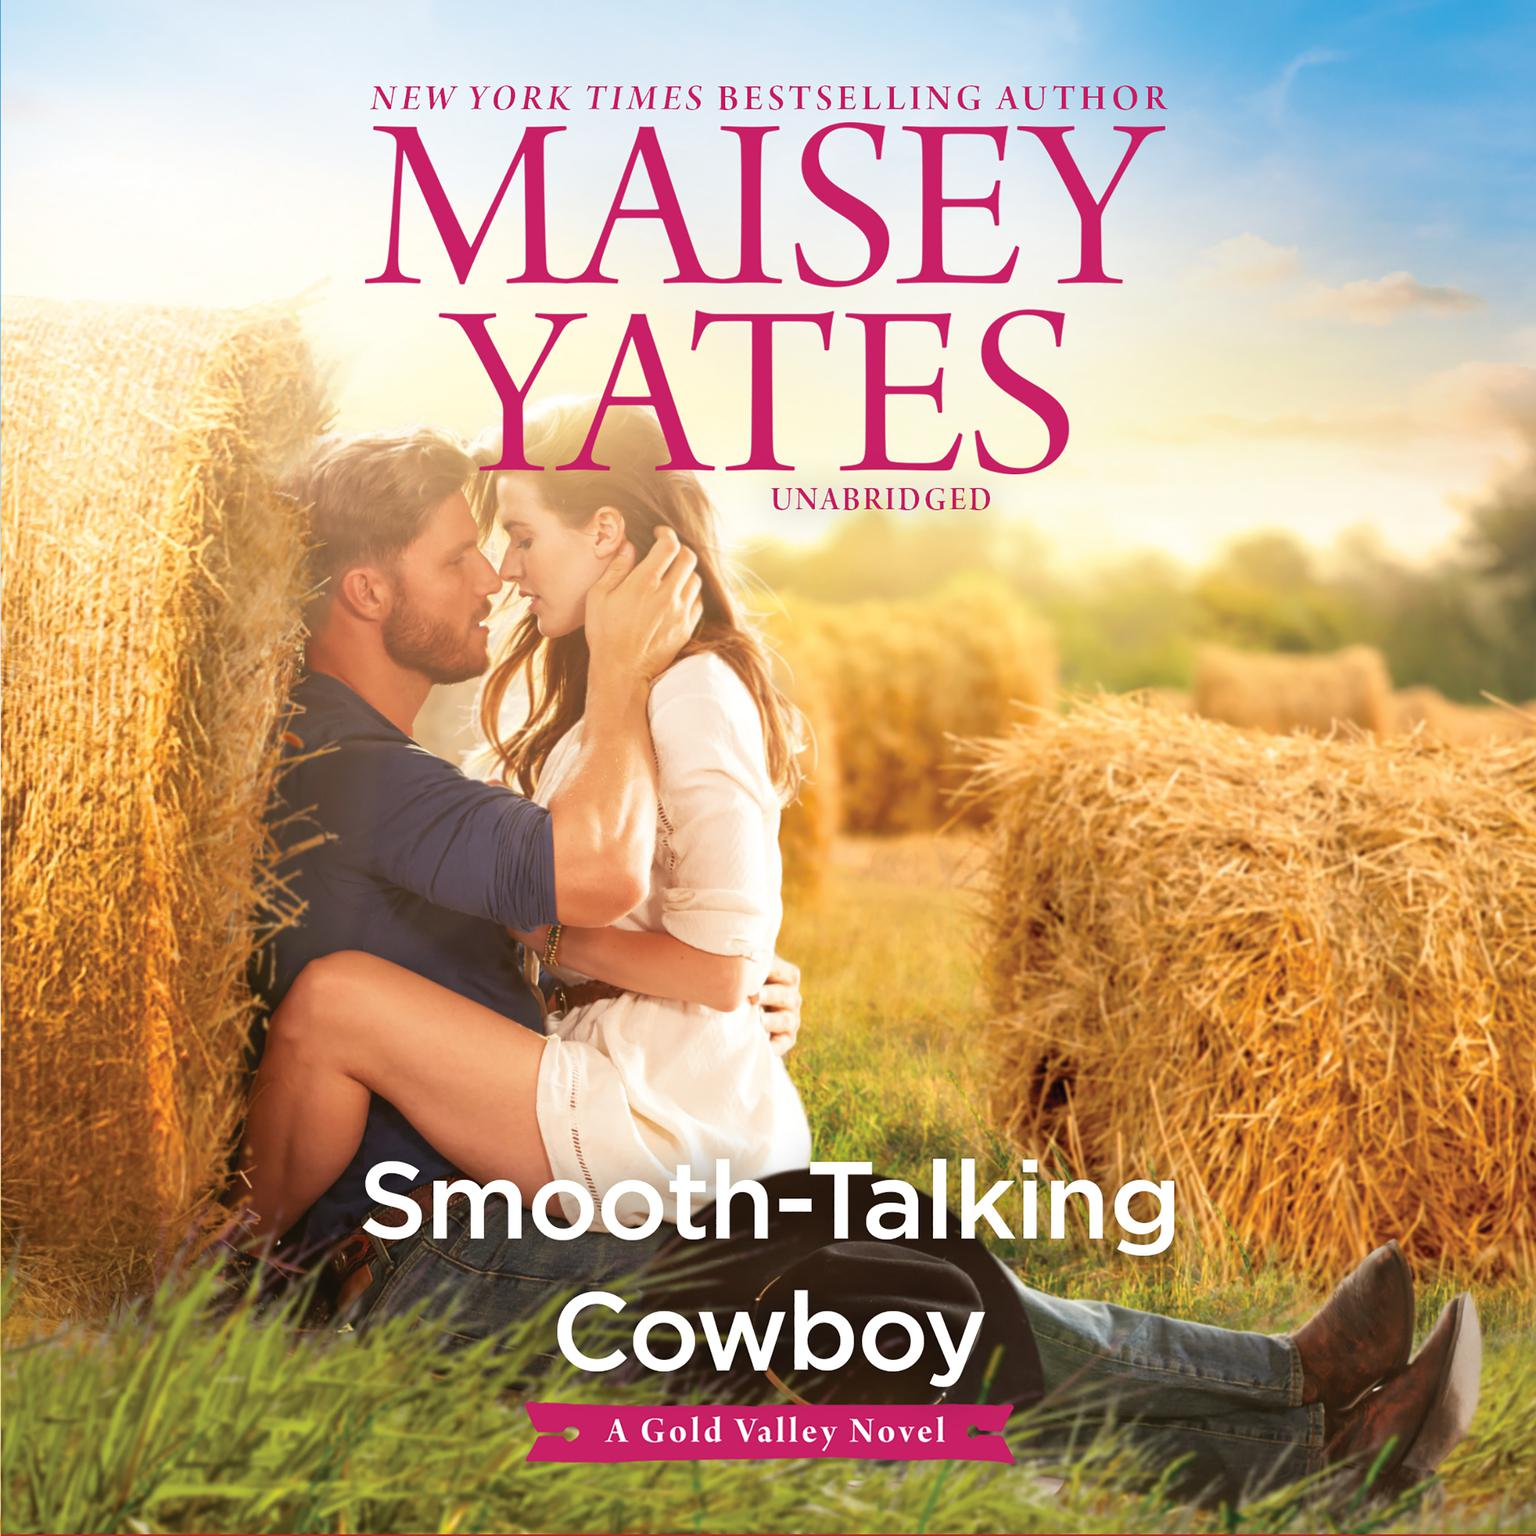 Smooth-Talking Cowboy: A Gold Valley Novel Audiobook, by Maisey Yates